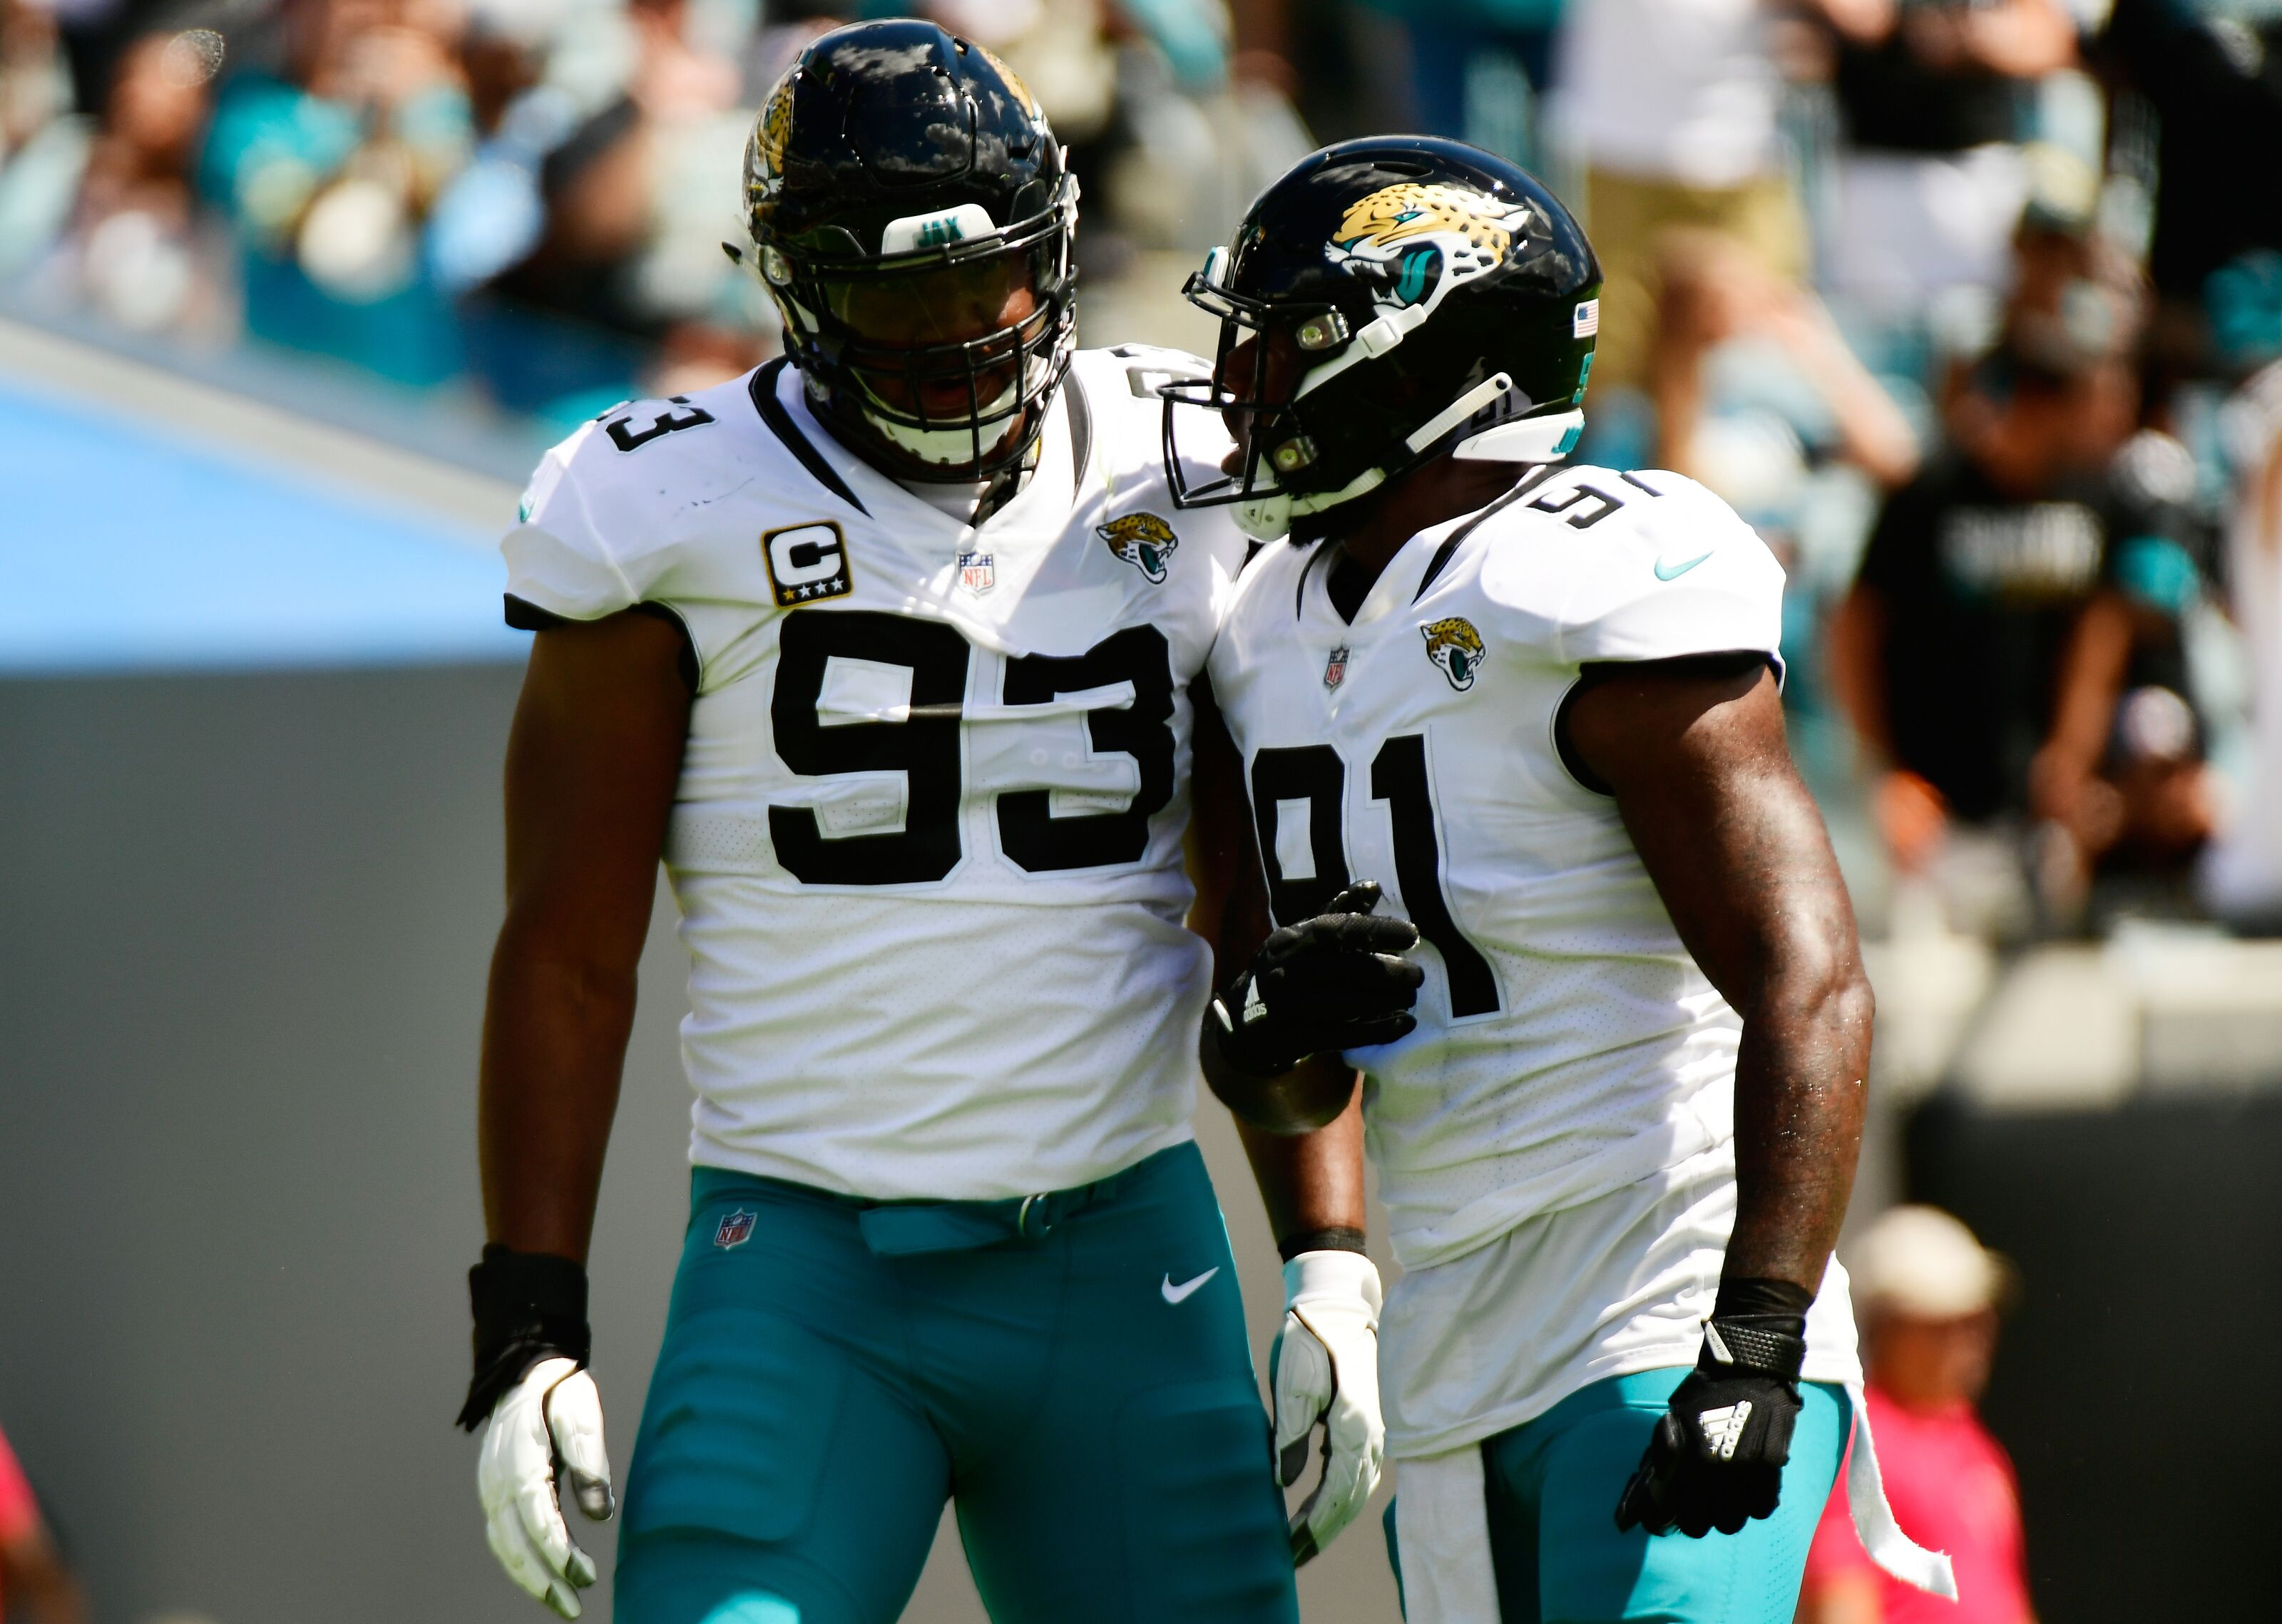 Jaguars Calais Campbell selected to Pro Bowl for a fourth time